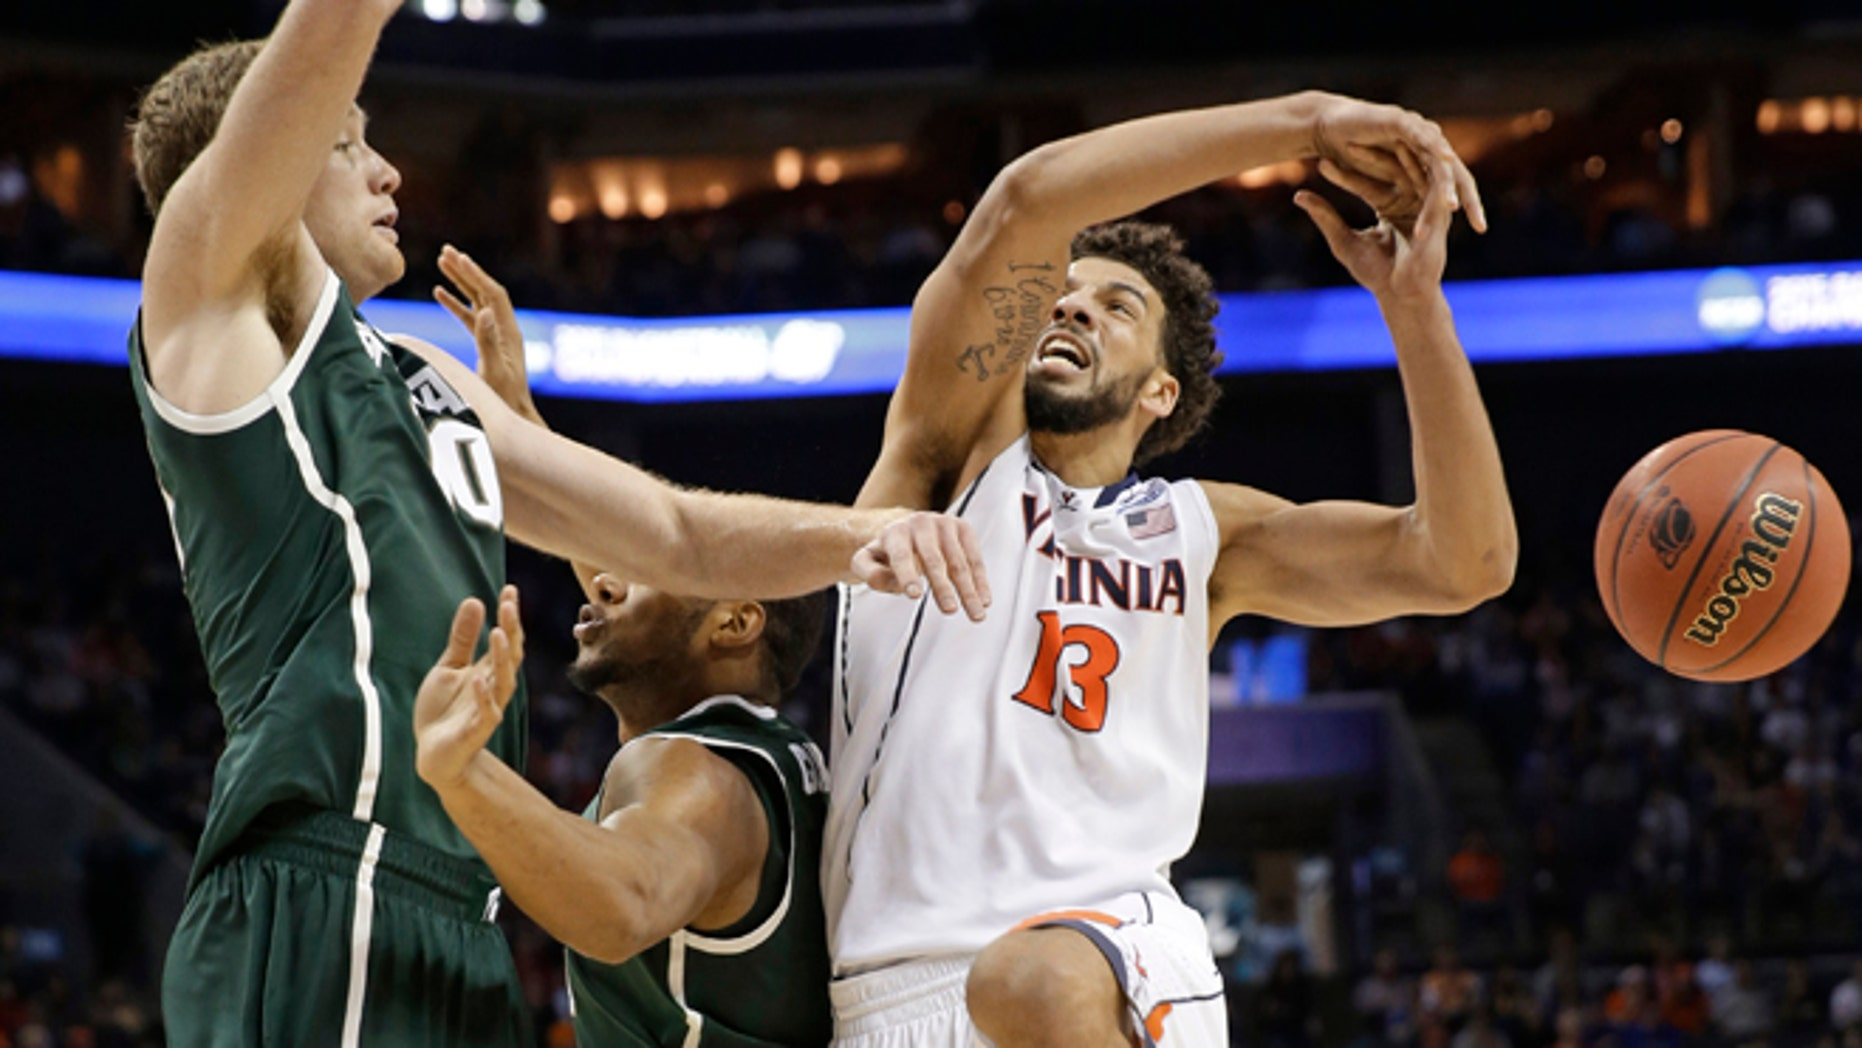 March 22, 2015: Michigan State's Matt Costello, left, knocks the ball from Virginia's Anthony Gill, right, during the second half of an NCAA tournament college basketball game in the Round of 32 in Charlotte, N.C.